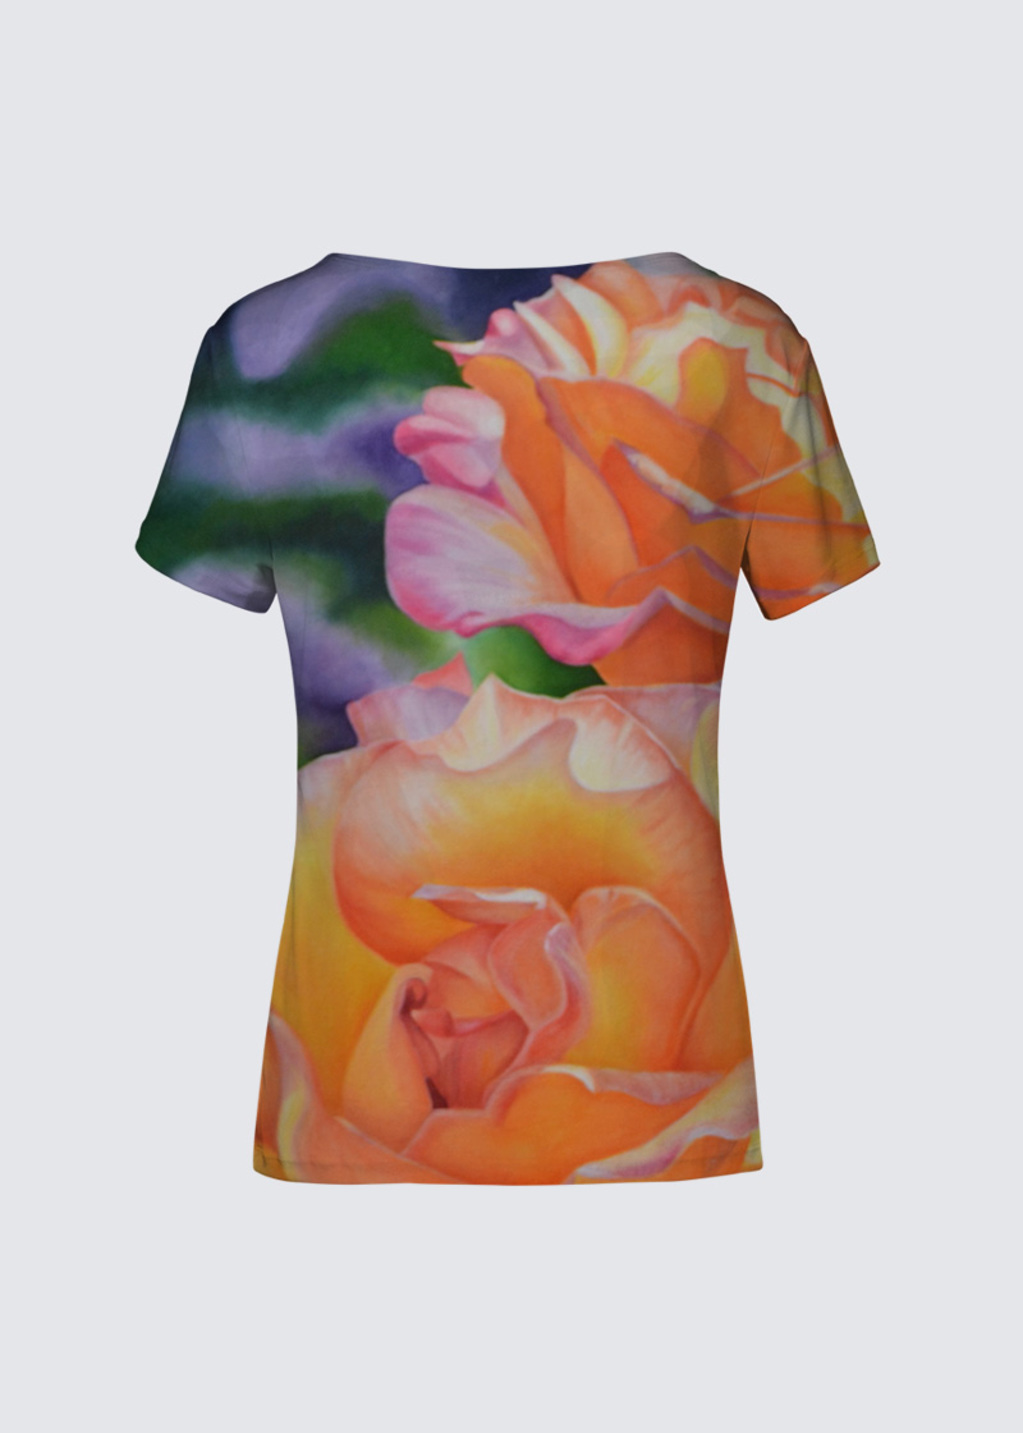 Picture of Raindrops on Roses K Smith Tee